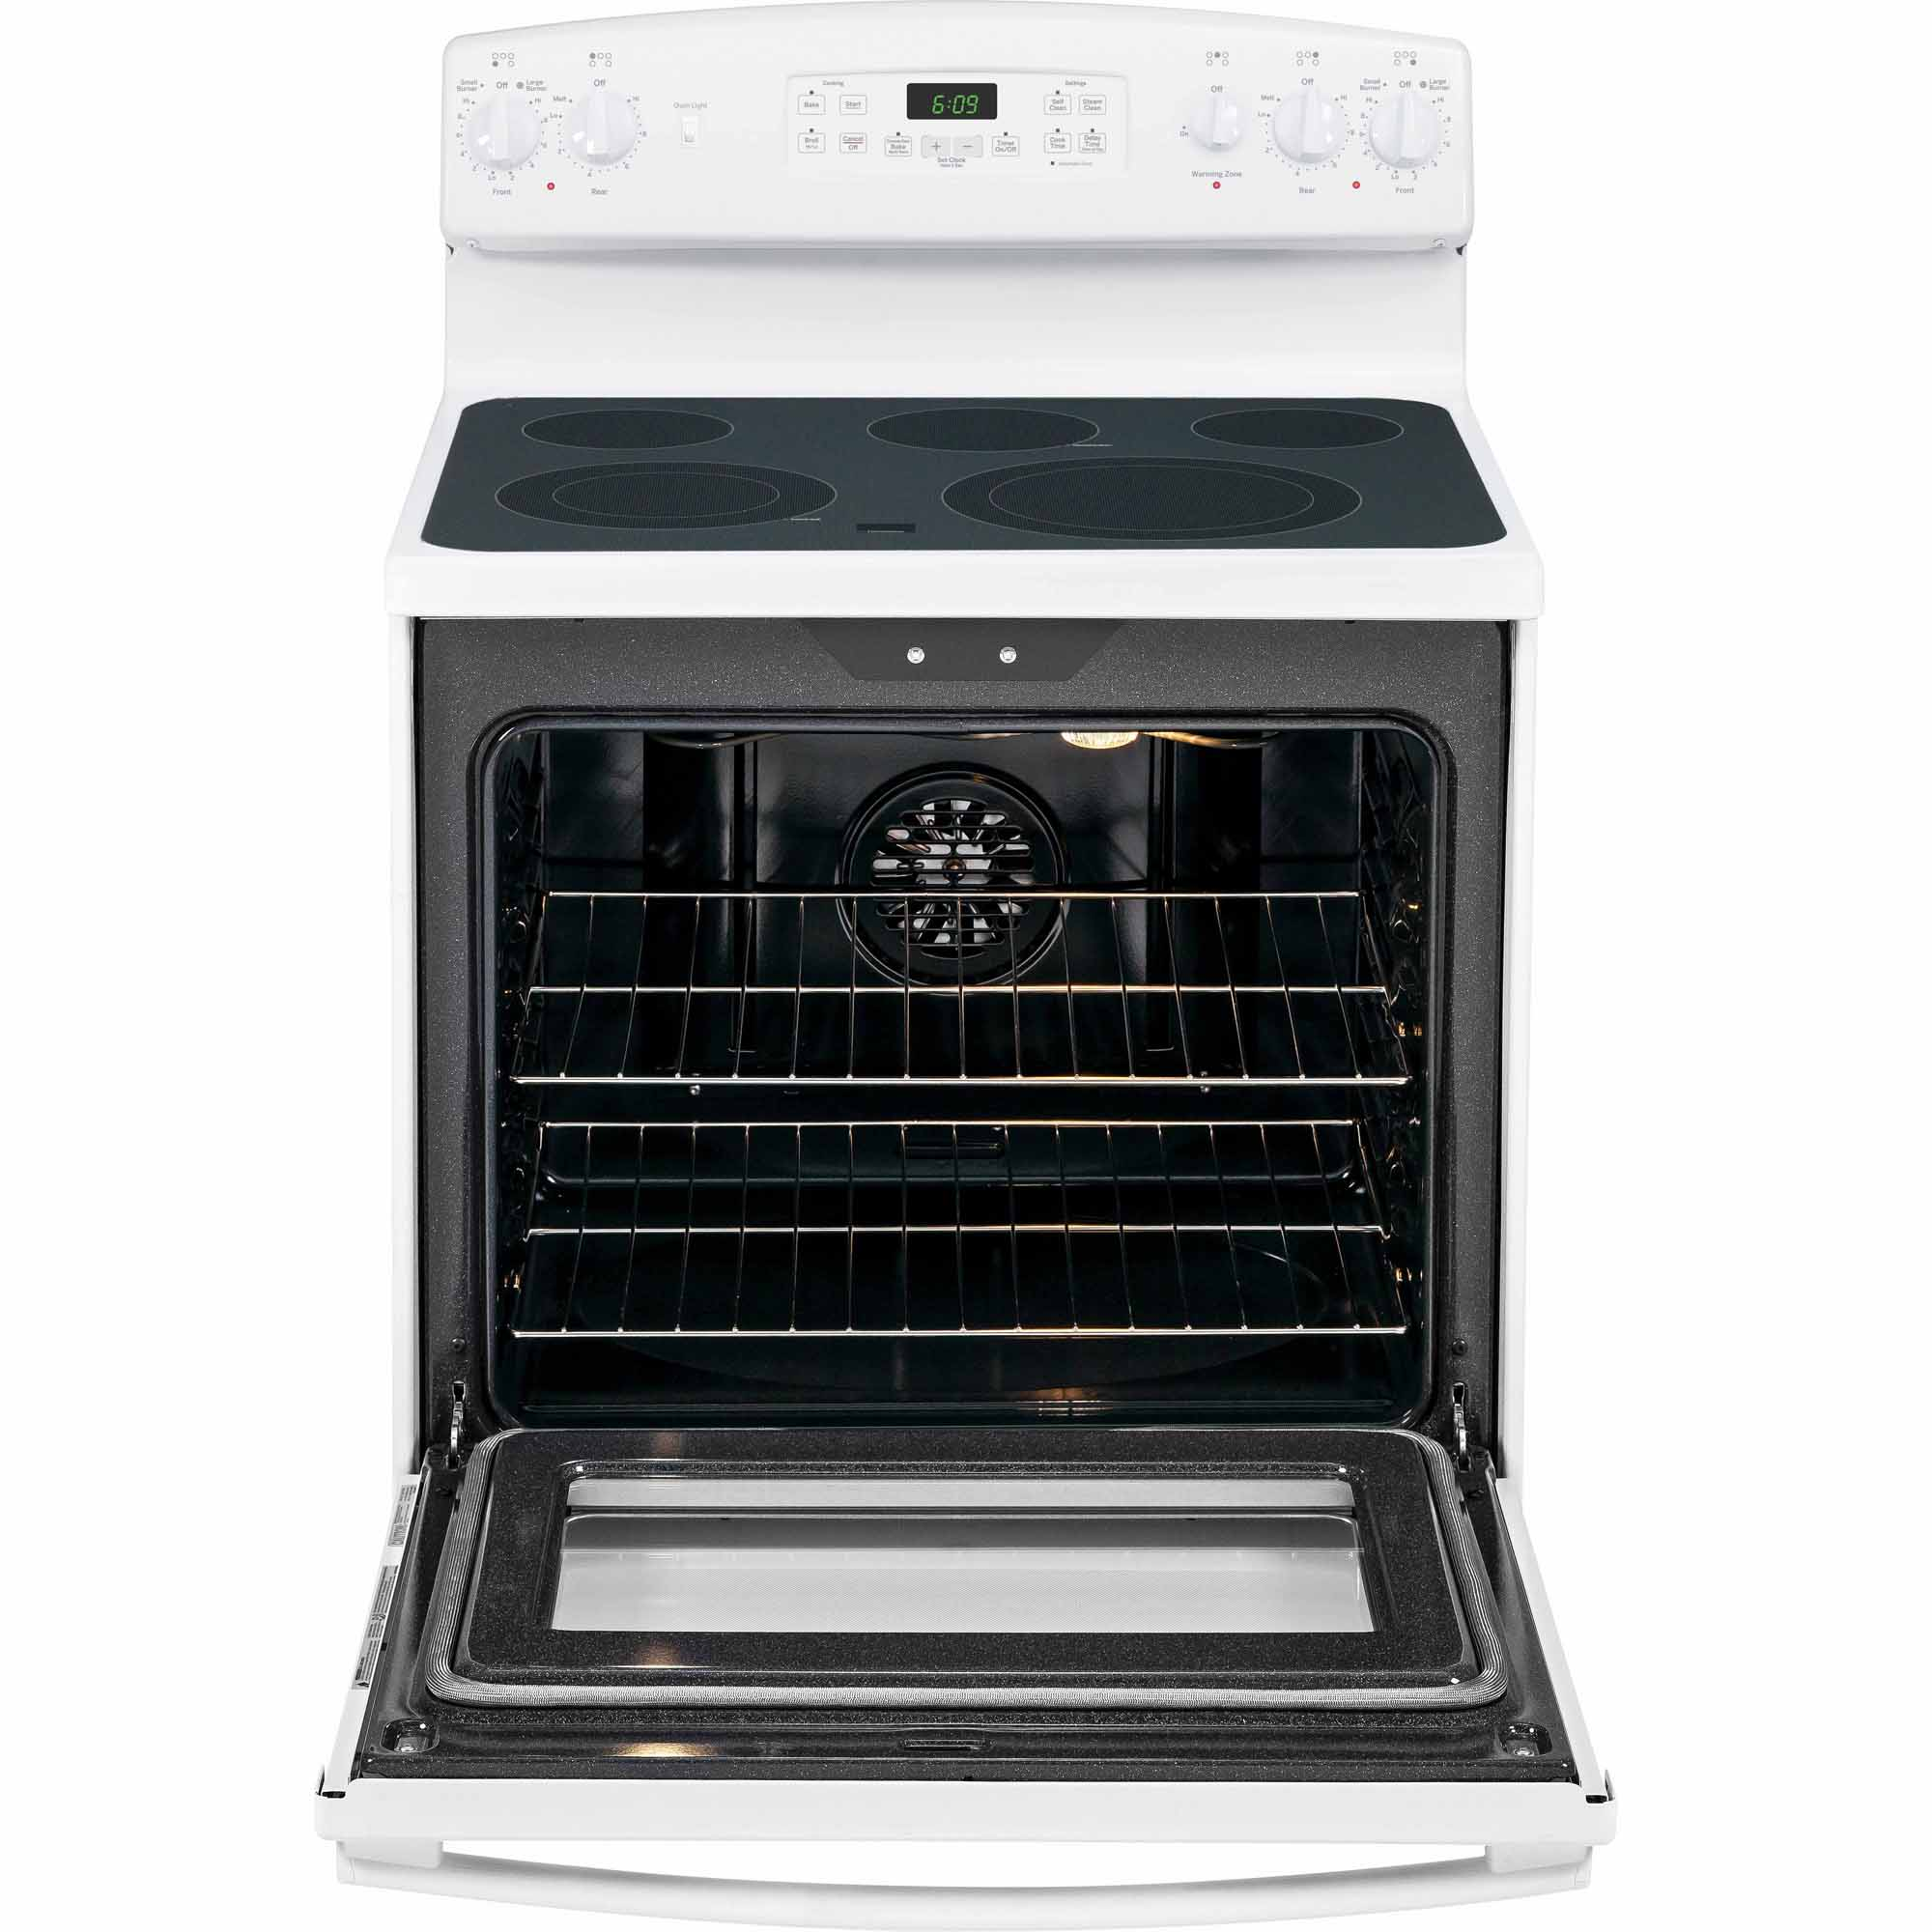 GE 5.3 cu. ft. Electric Range w/ Convection Oven - White